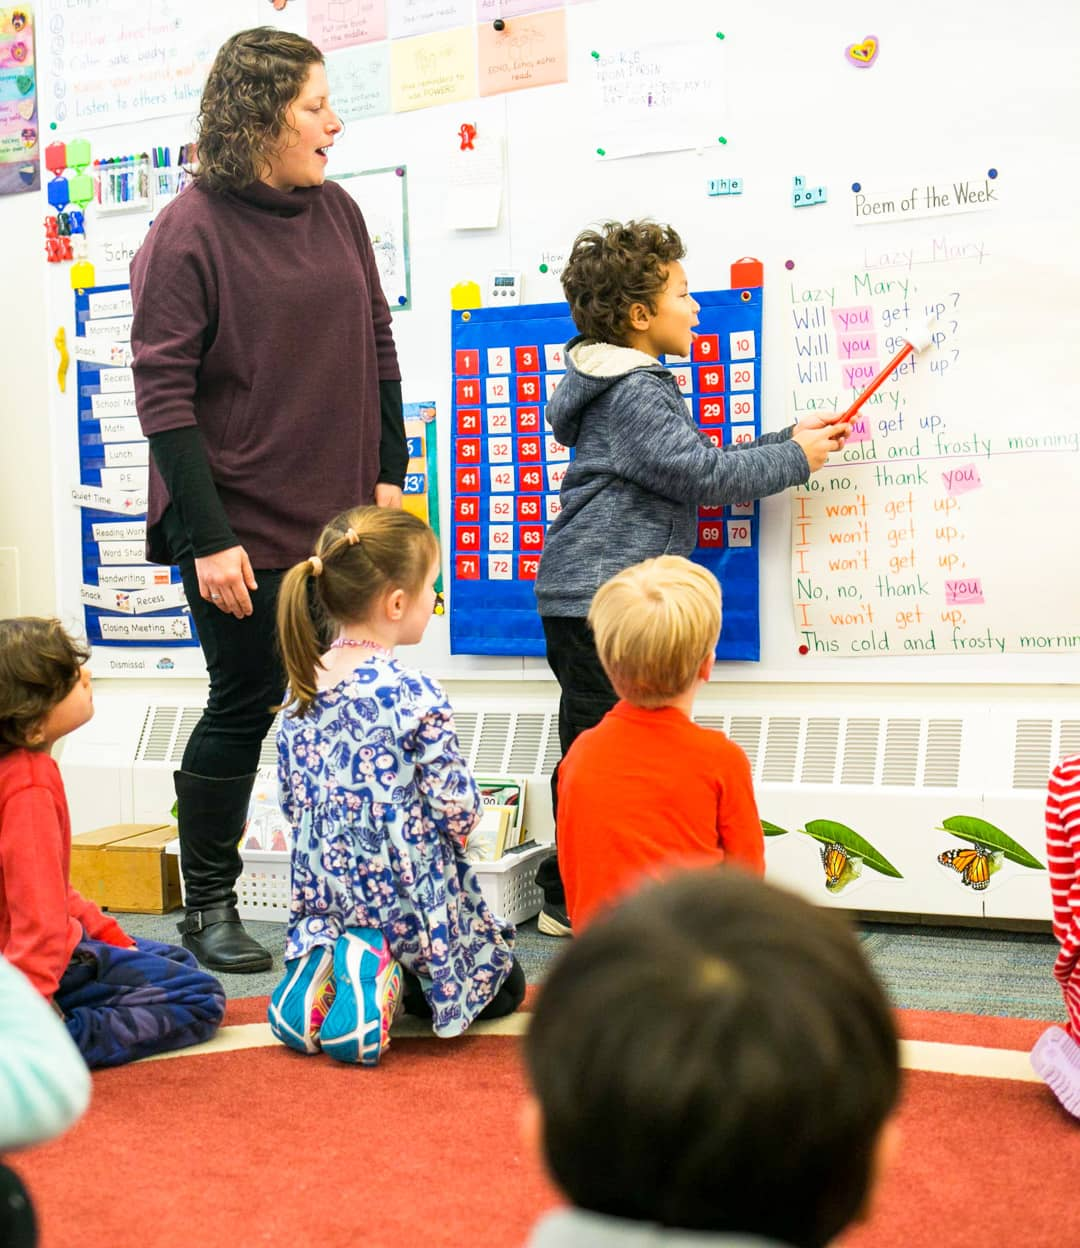 Kindergarten class watches while student points at words on wall